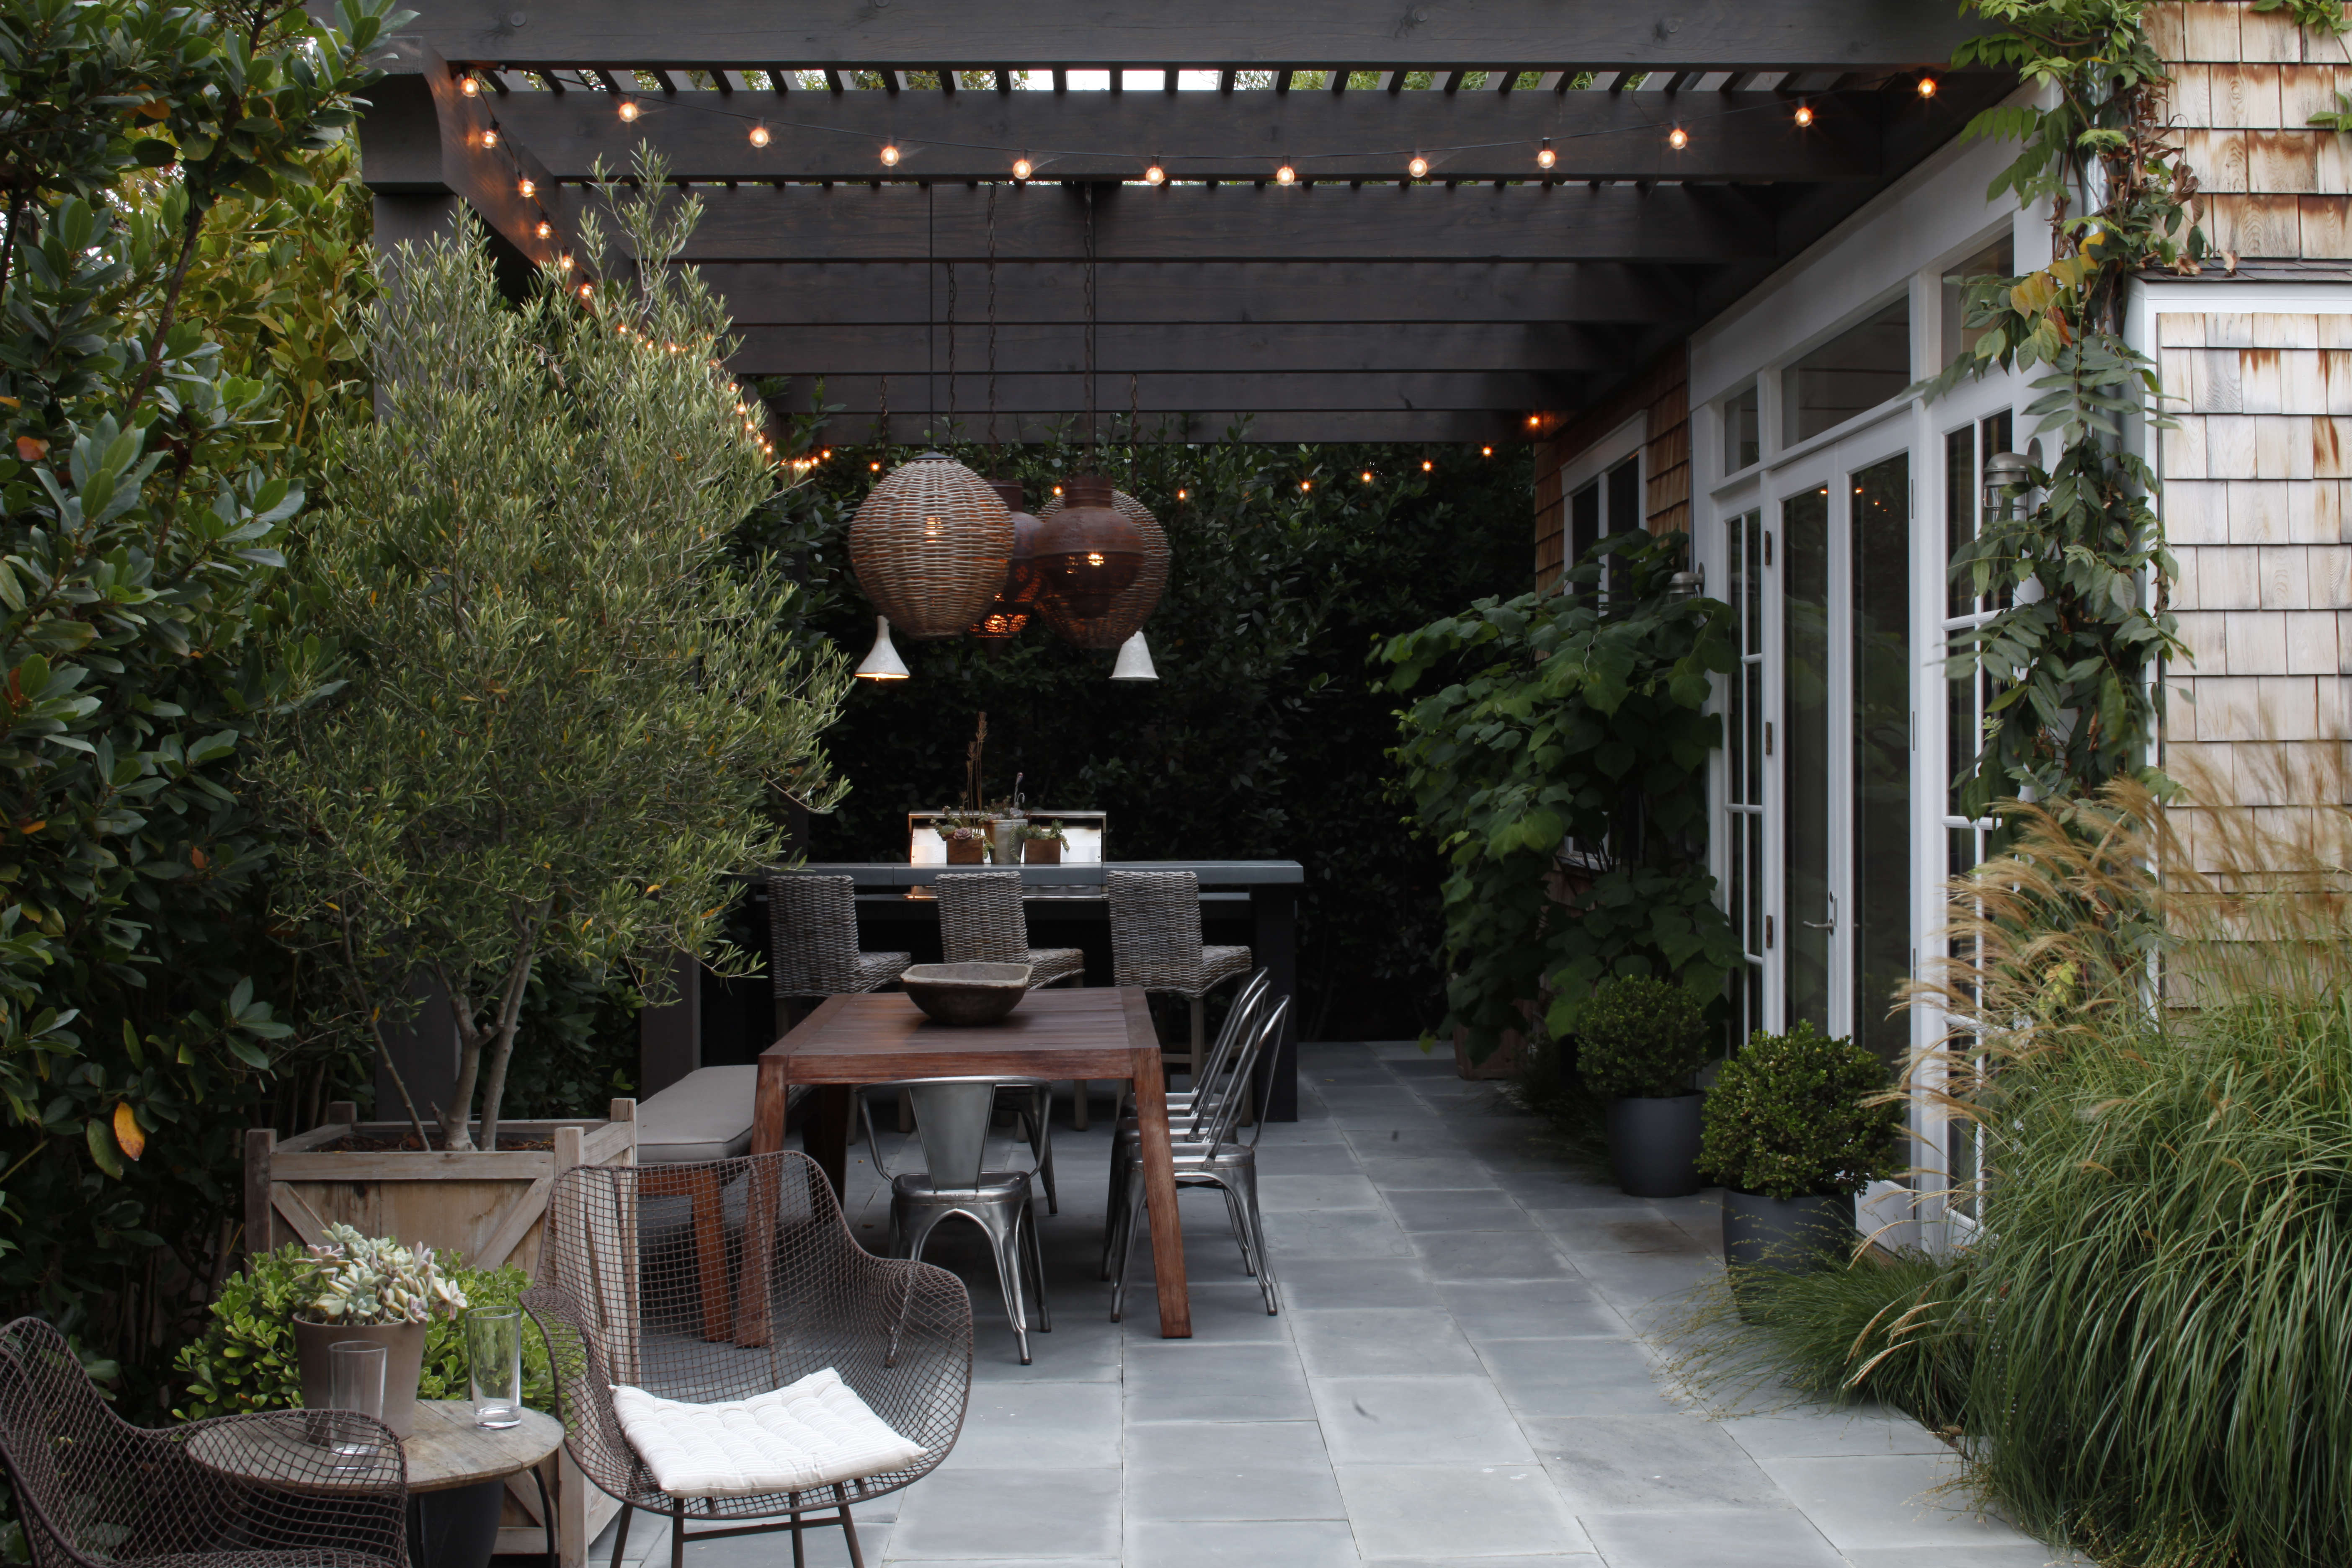 Browse the garden finished browse the garden before - Mark Tessier Pacific Palisades Garden Bluestone Pavers Pergola